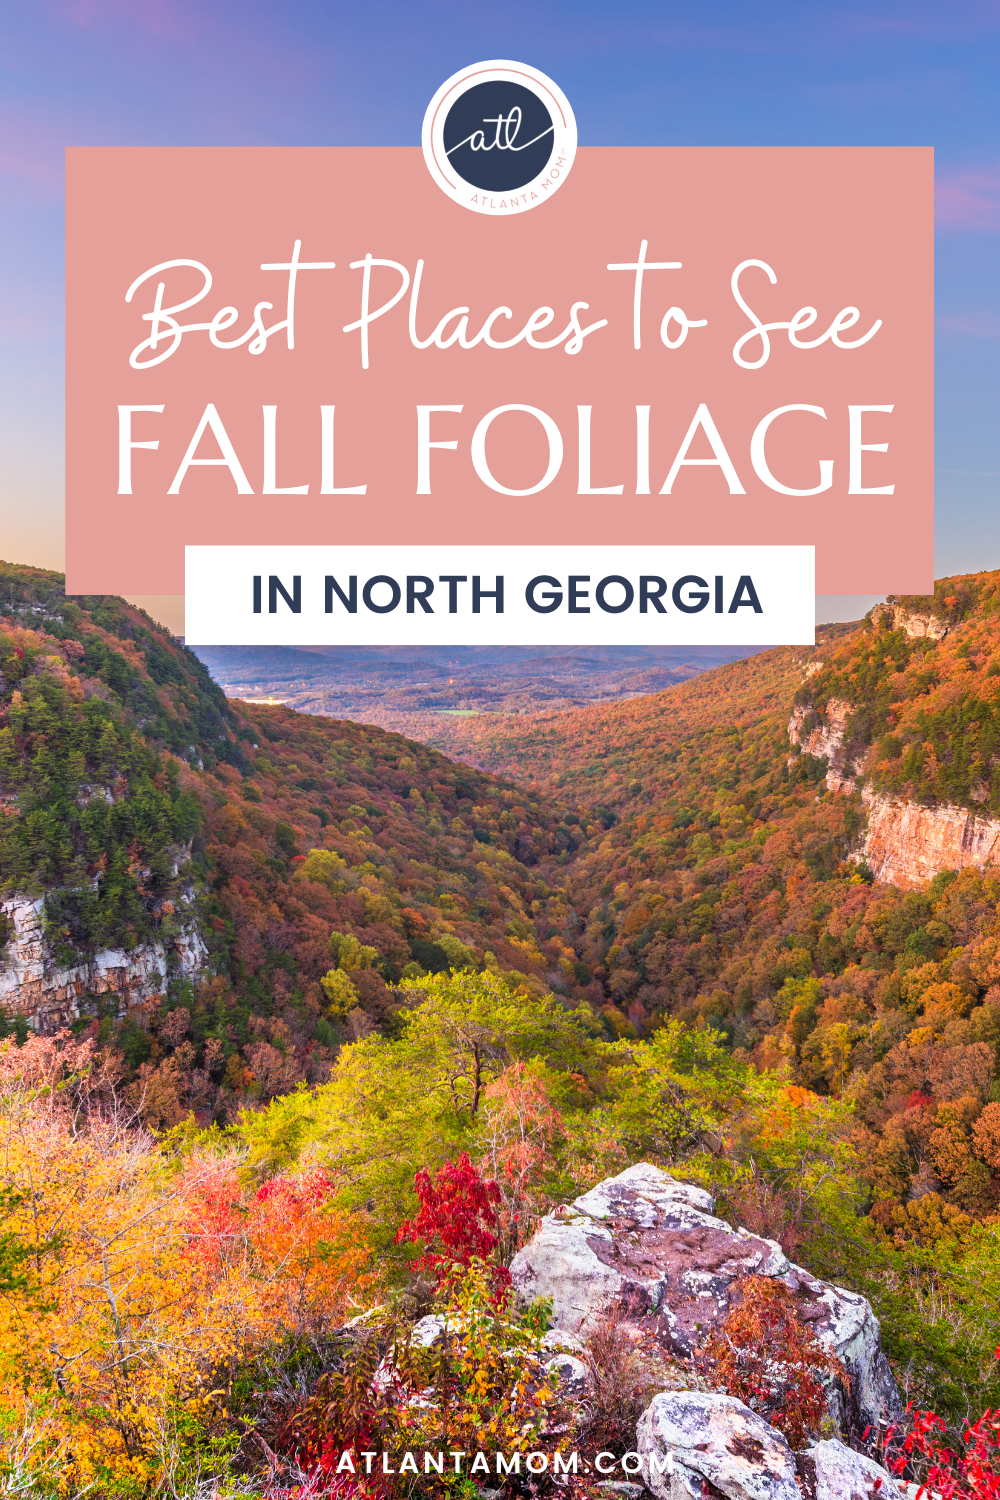 Best Places to See Fall Foliage in North Georgia